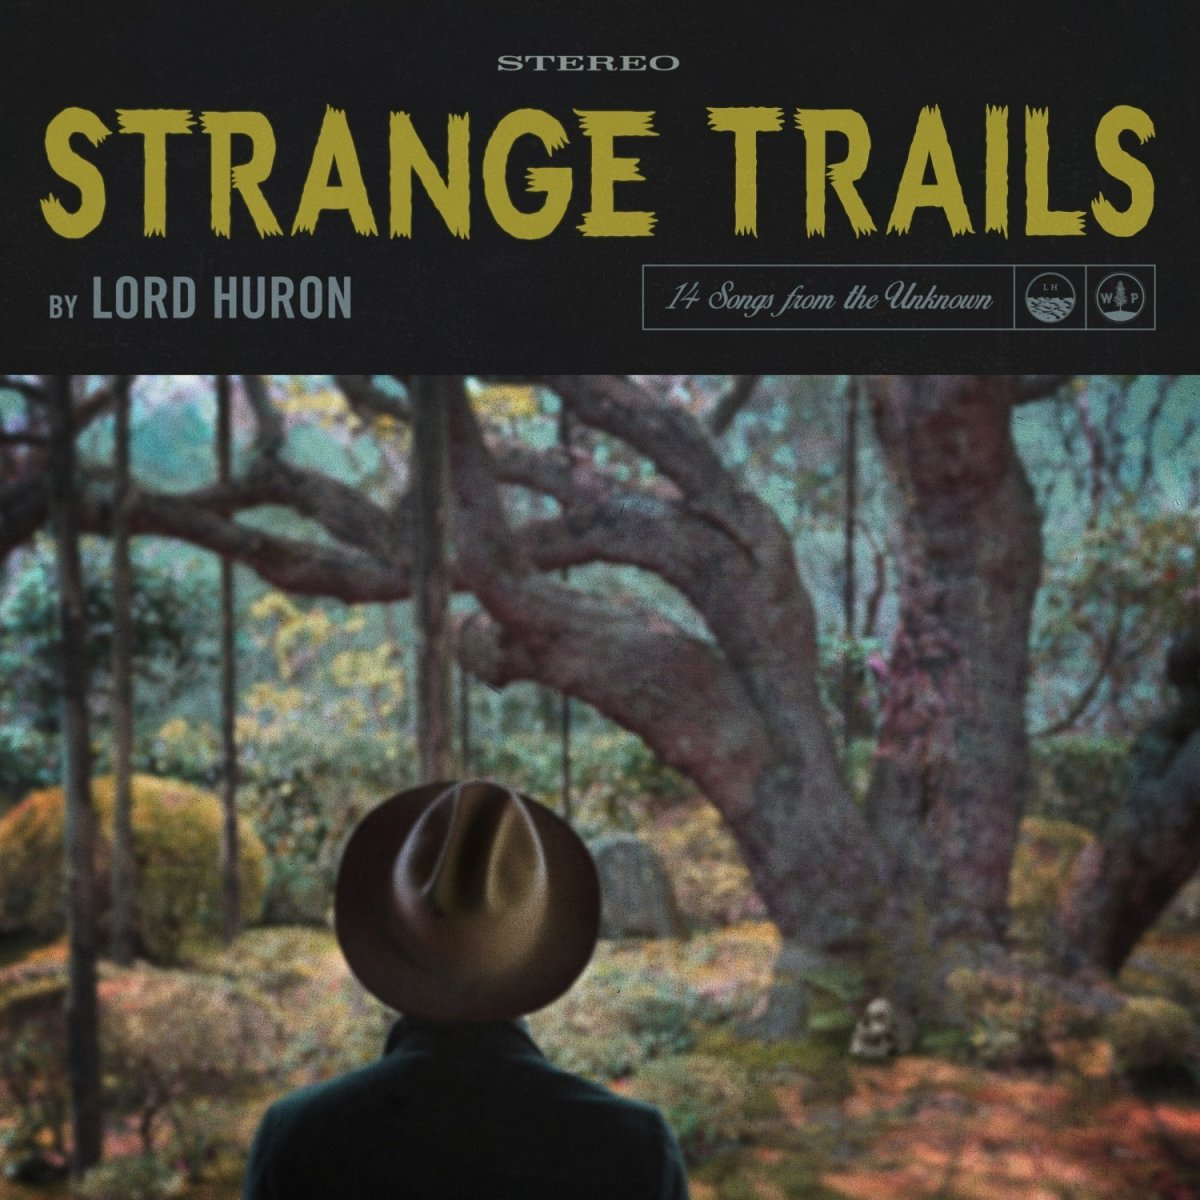 Track Review: Lord Huron, 'The Night We Met' (Strange Trails)